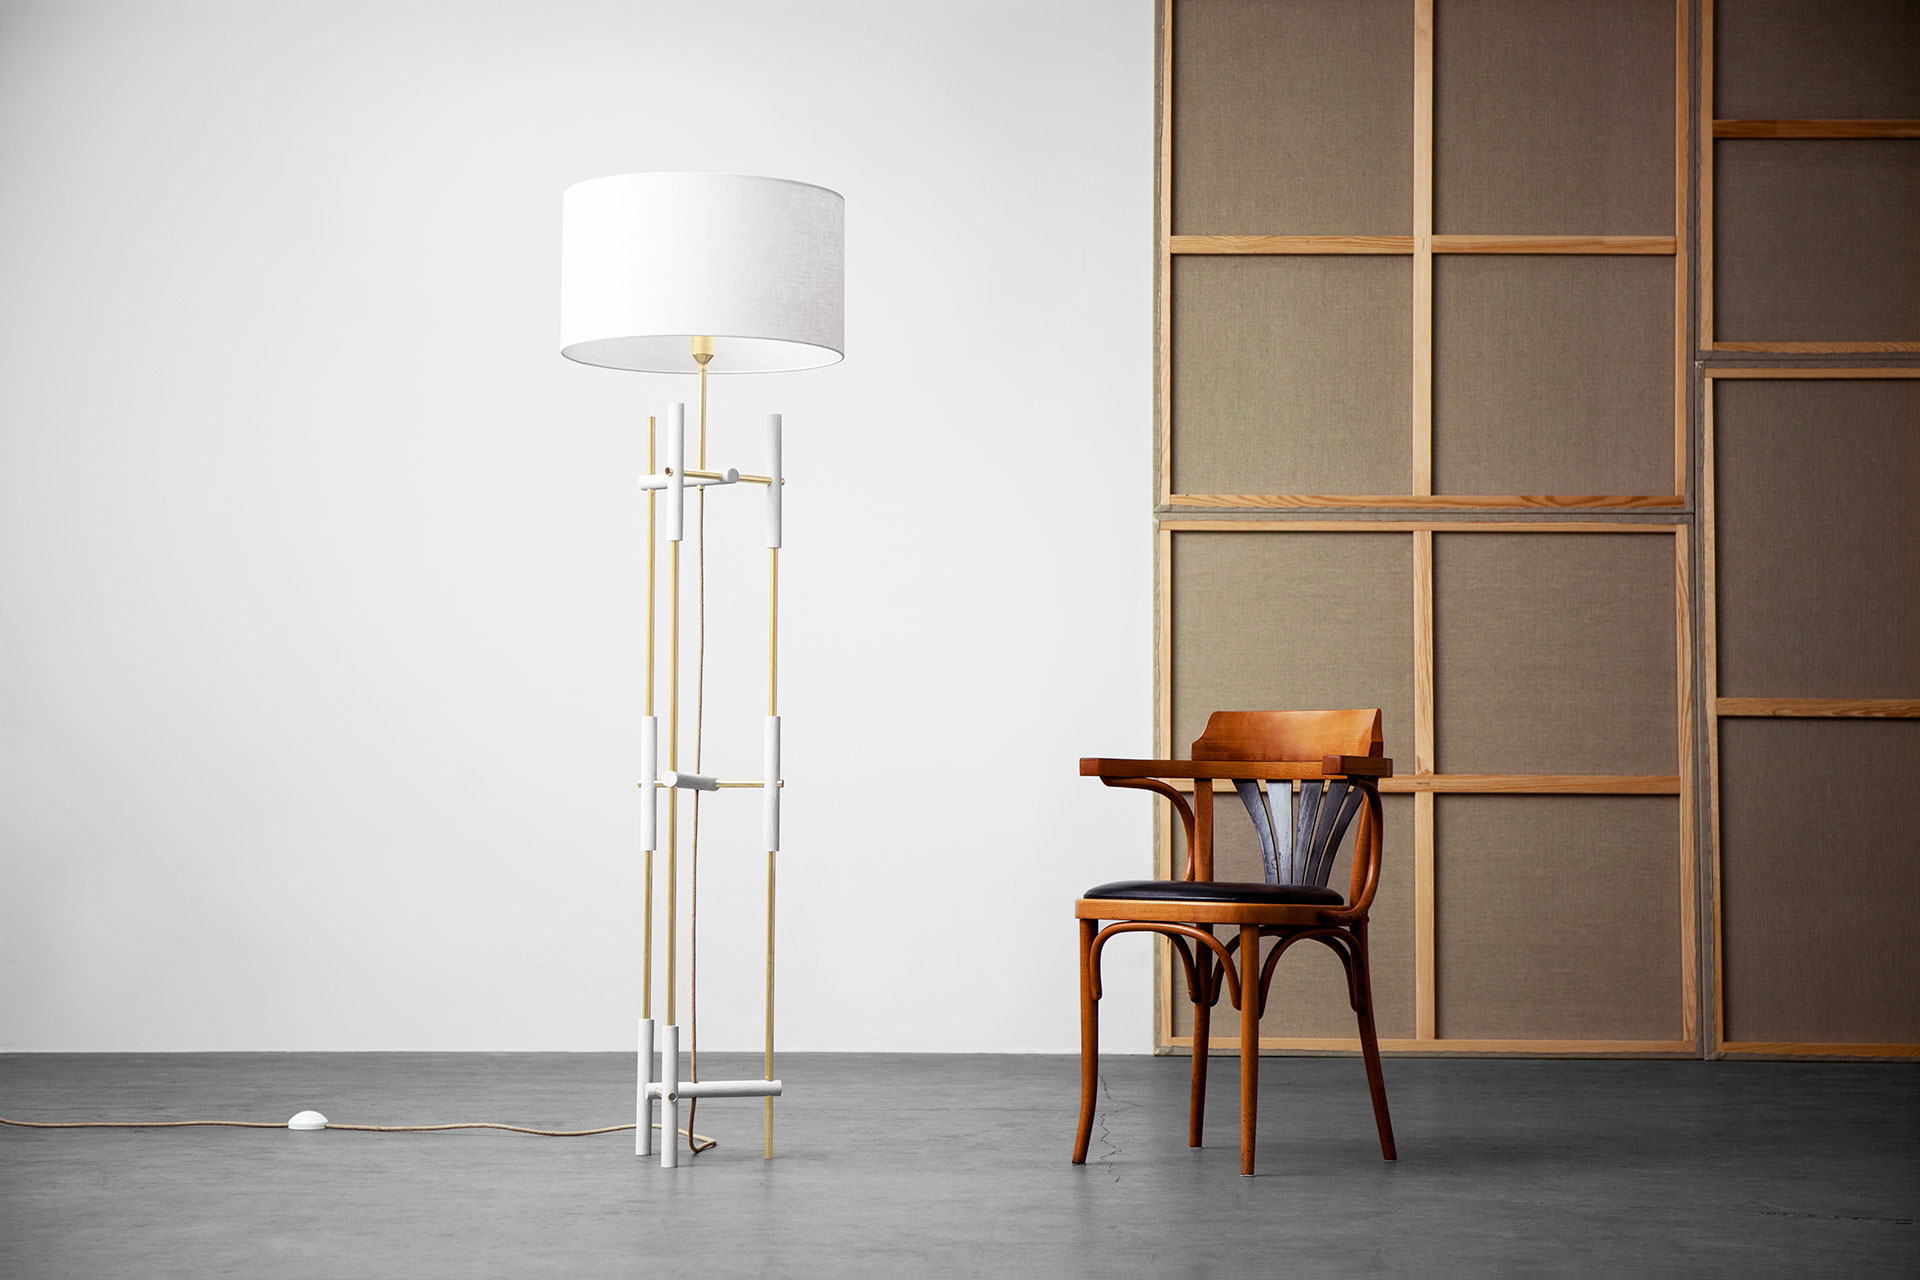 Japanese design floor lamp made of wood and brass yamato by zapalgo designer lighting floor lamp in gold brass and white wood inspired by mid century modern mozeypictures Images